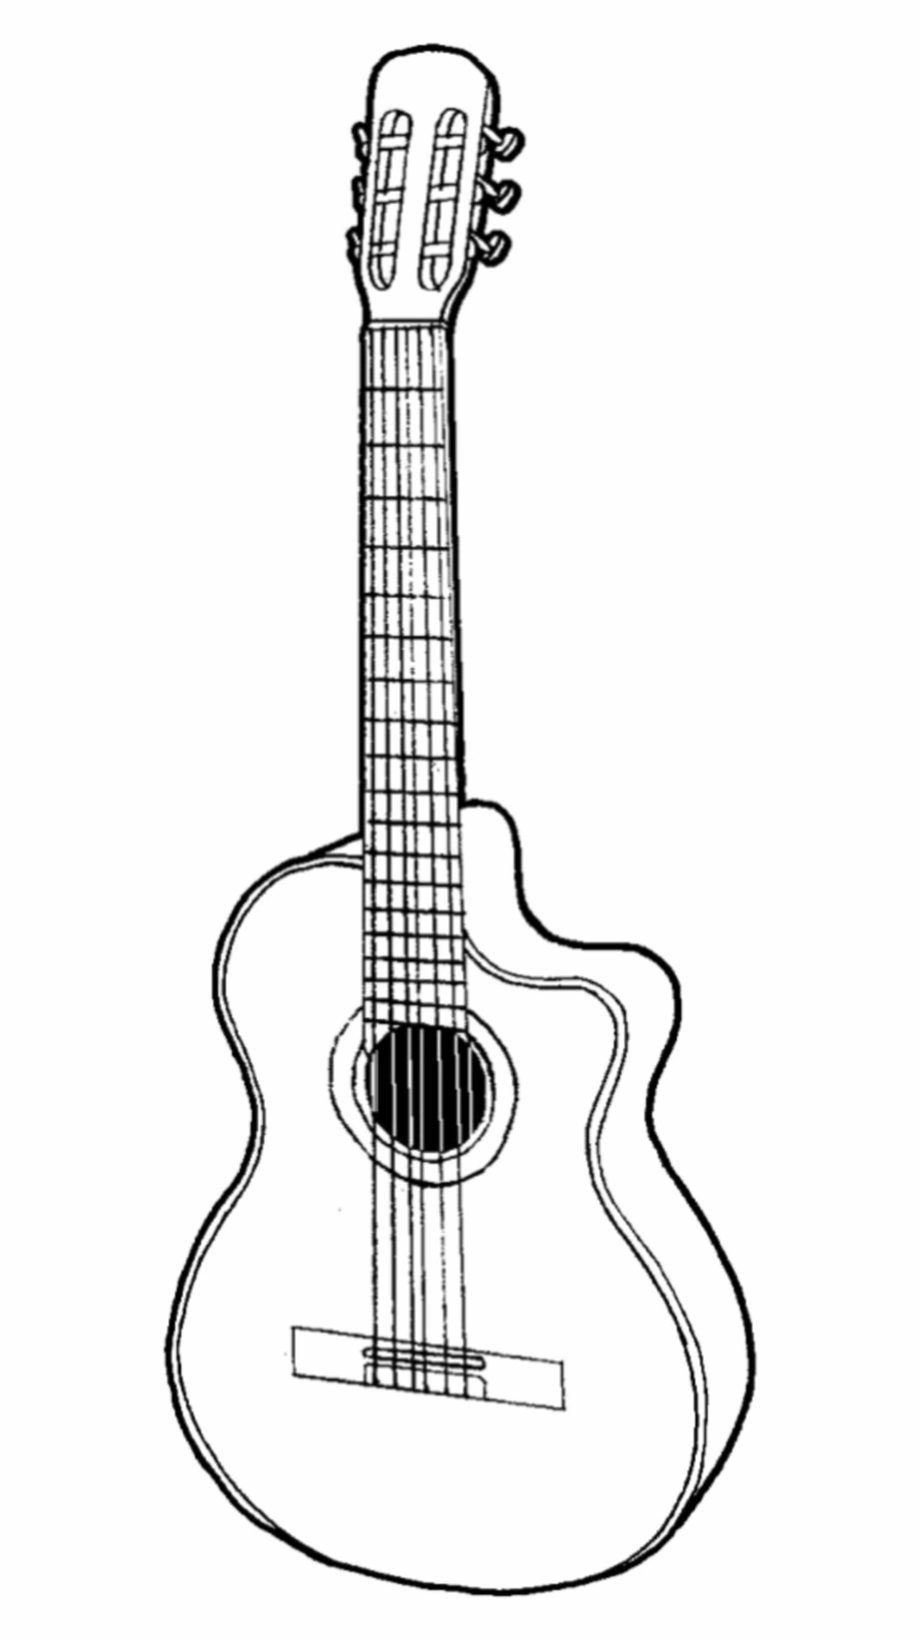 drawing guitar cartoon guitar drawing at getdrawings free download drawing guitar